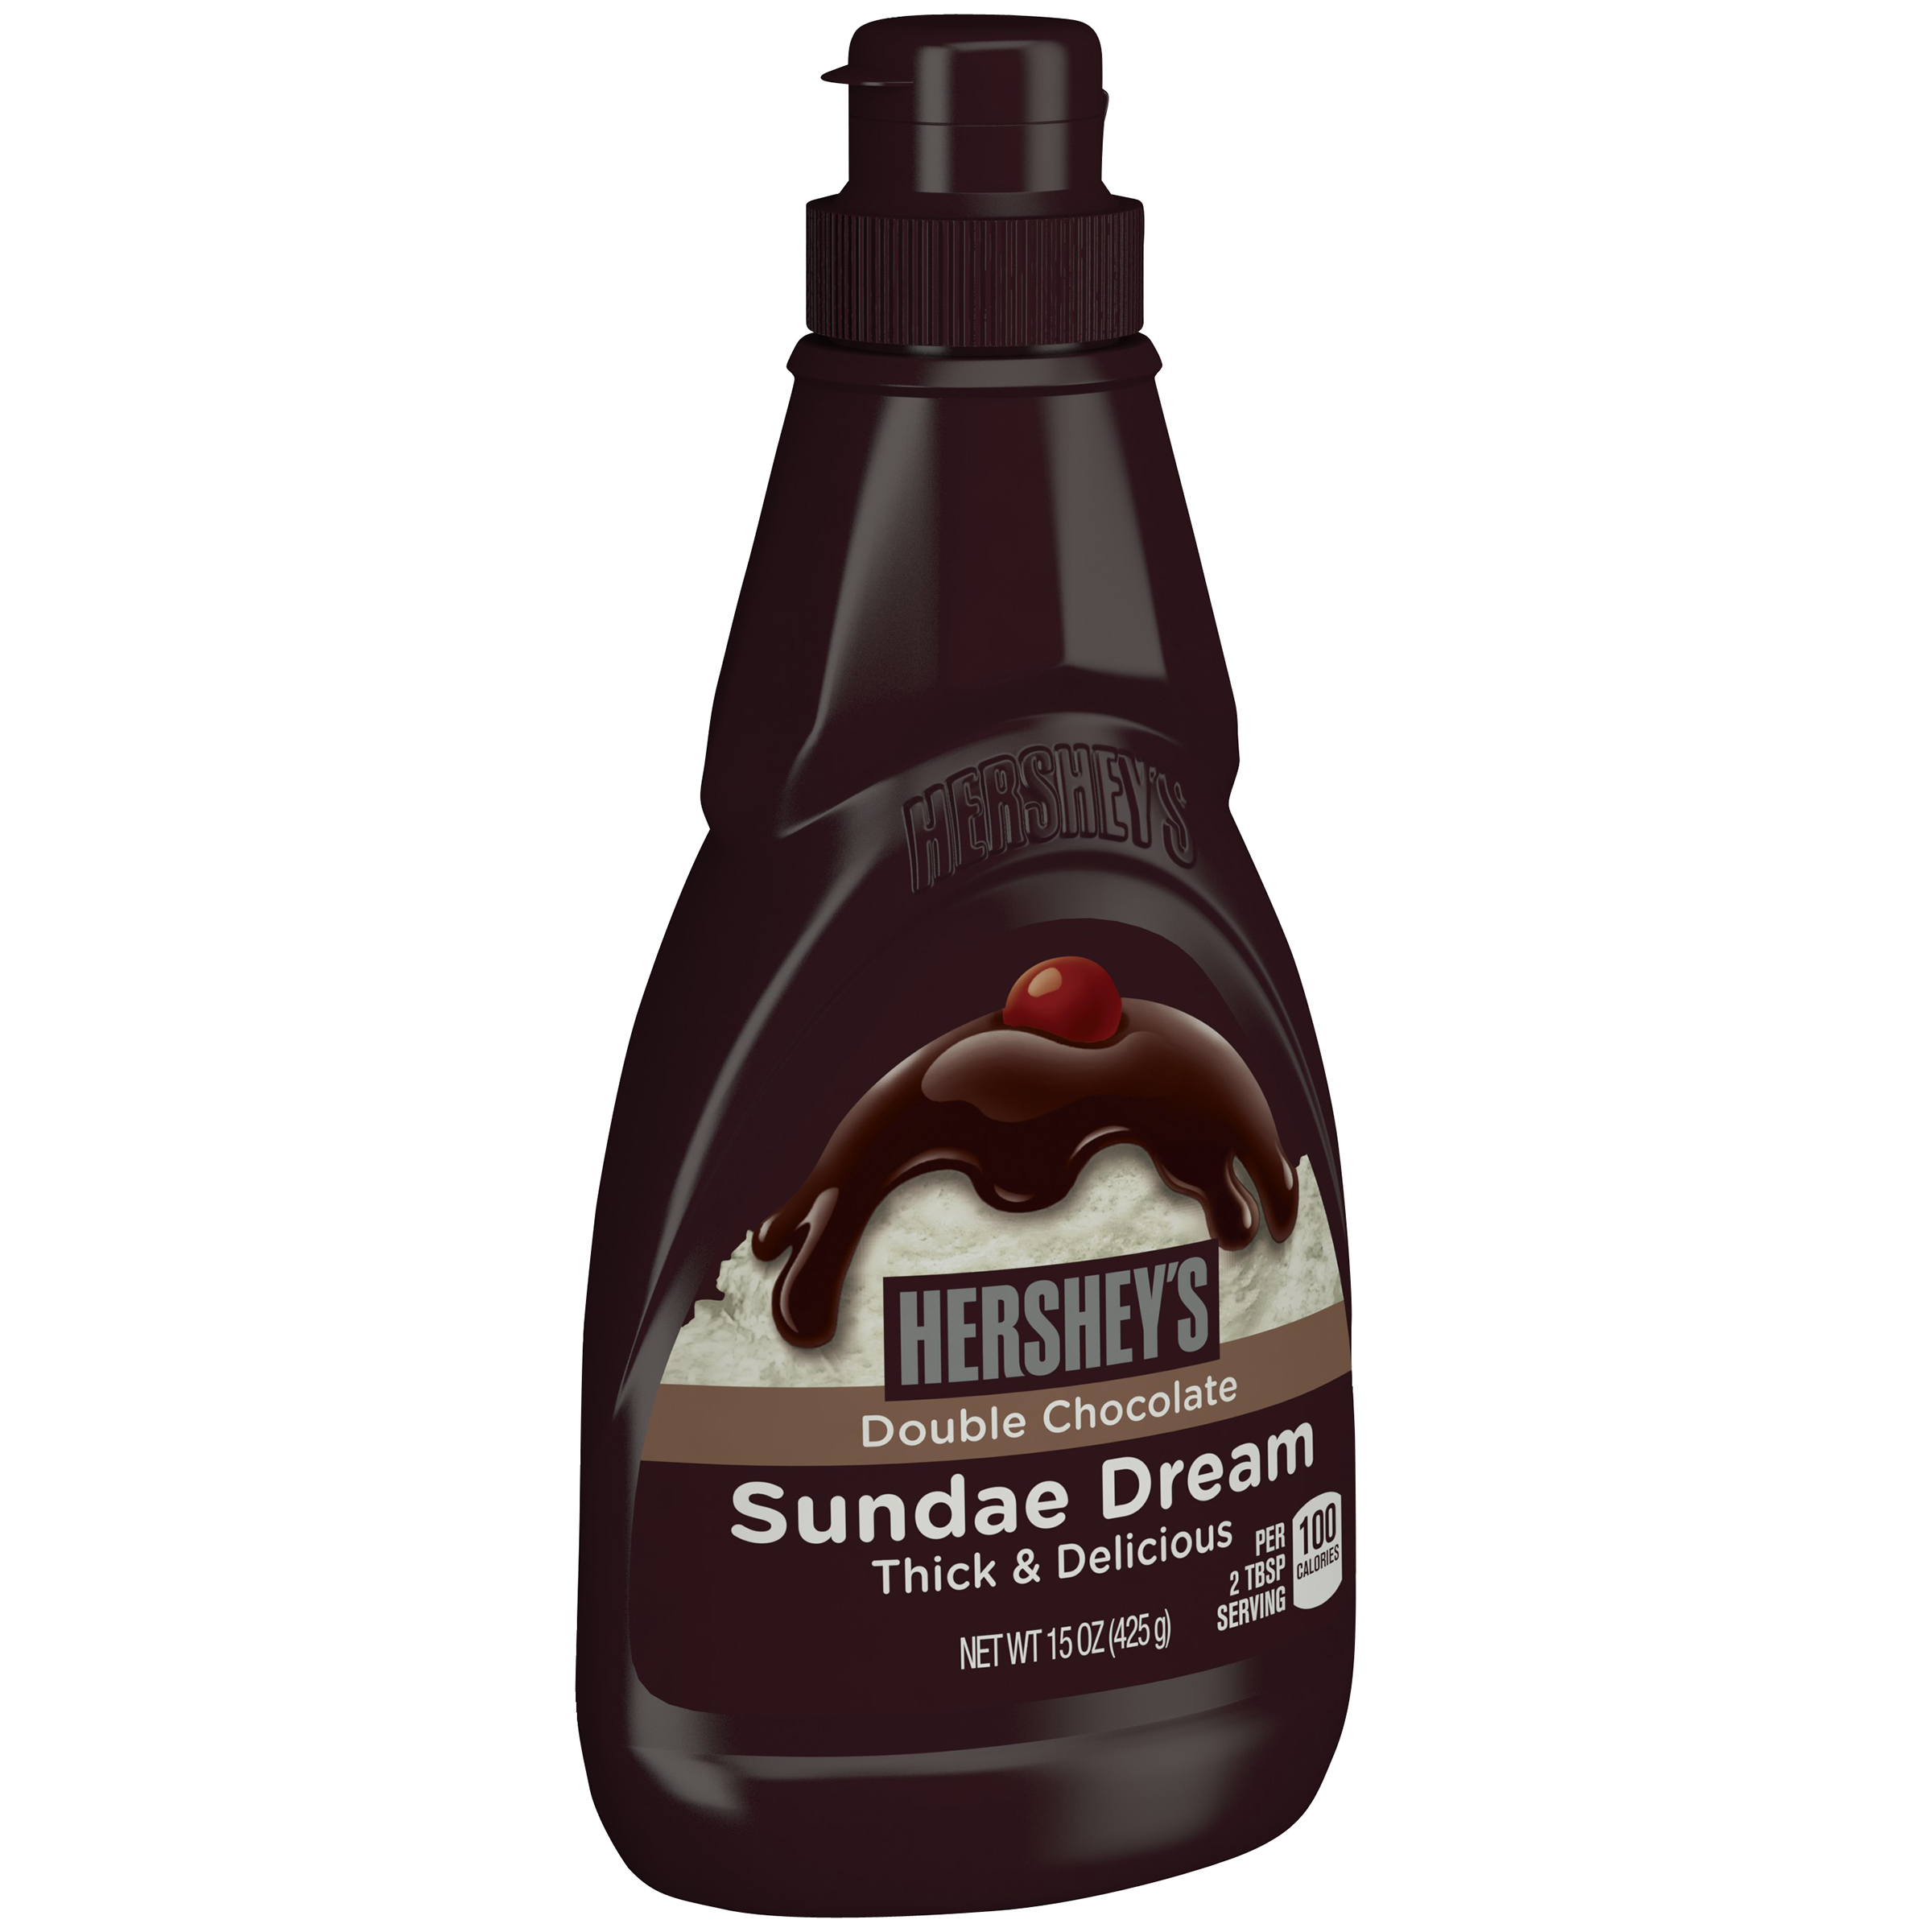 HERSHEY'S SUNDAE DREAM Double Chocolate Syrup, 15 oz